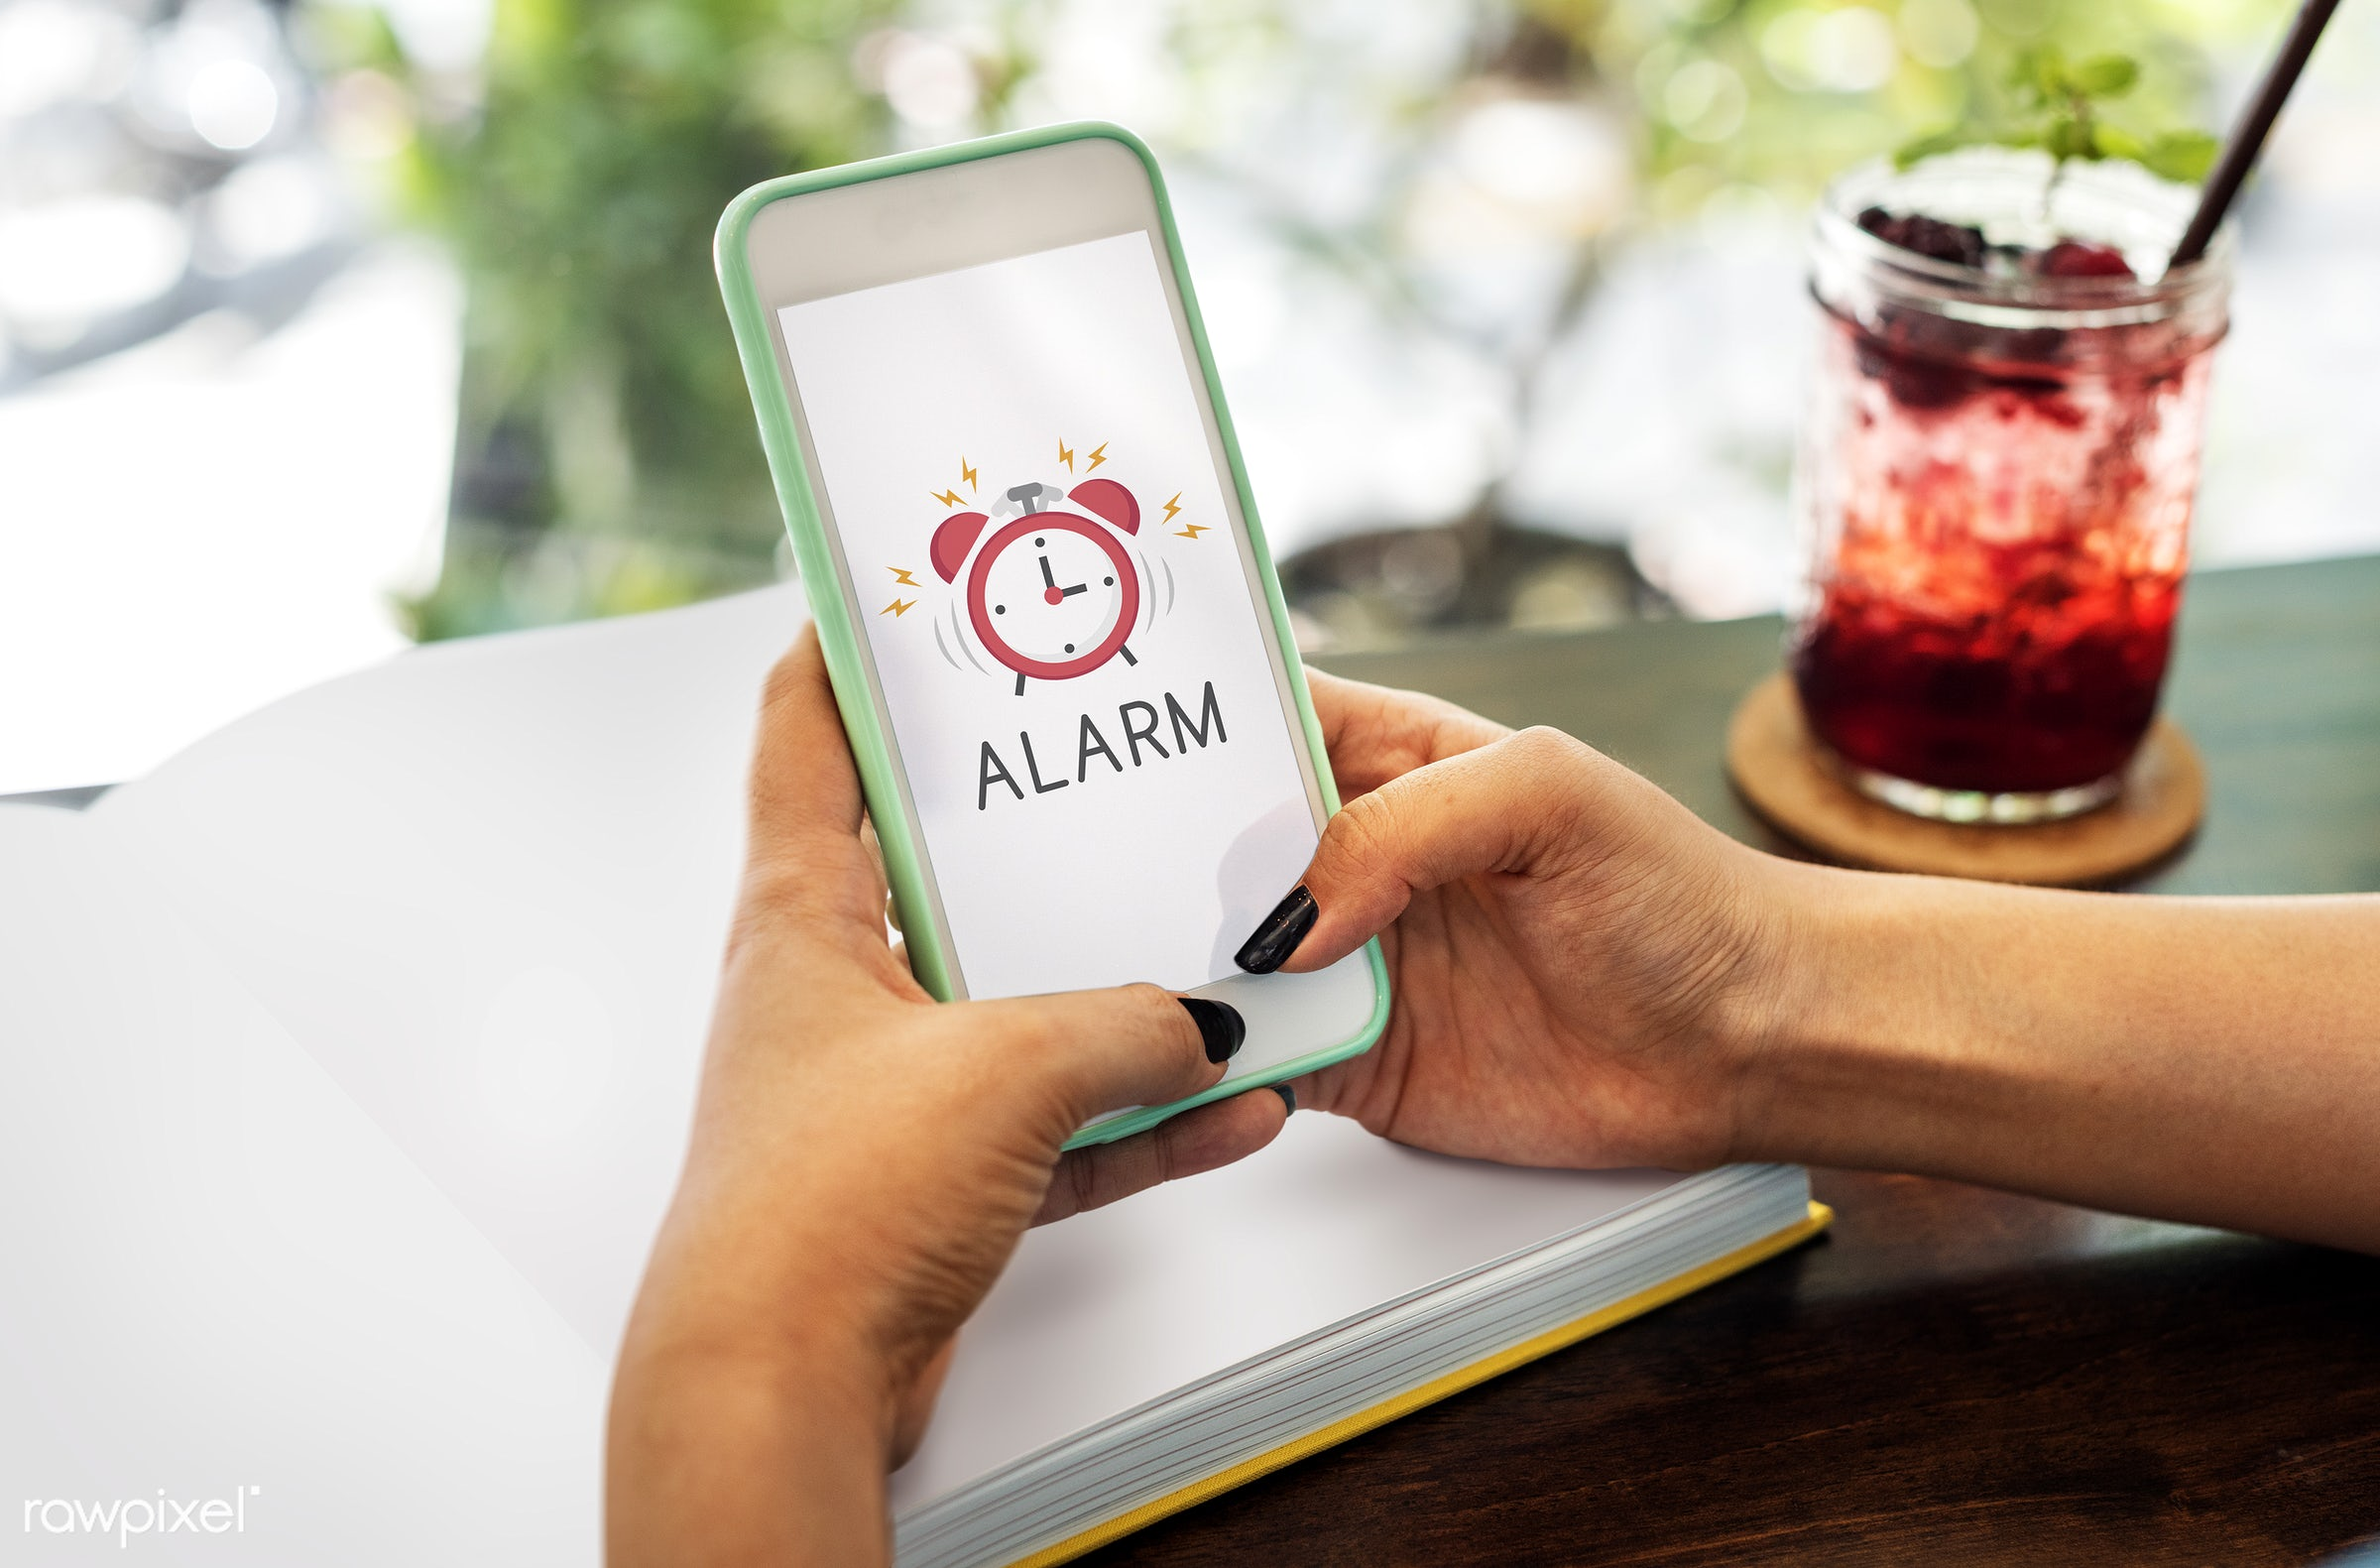 alarm, alert, appointment, attention, beware, break, browsing, cafe, casual, caution, cellphone, chat, clock, computer,...